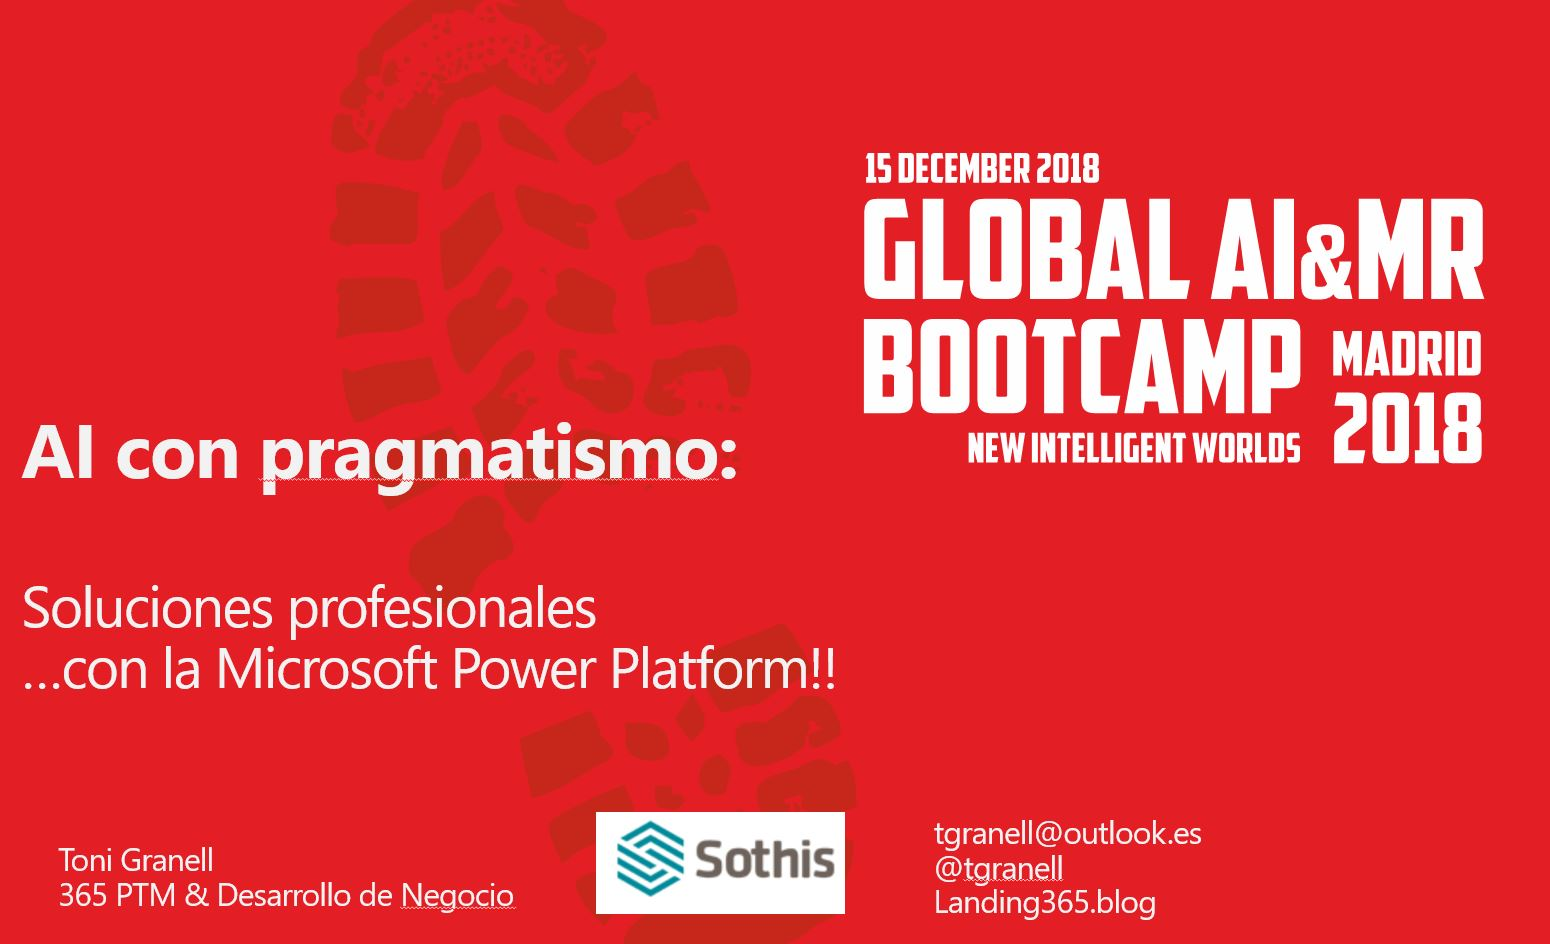 Global AI & MR Bootcamp